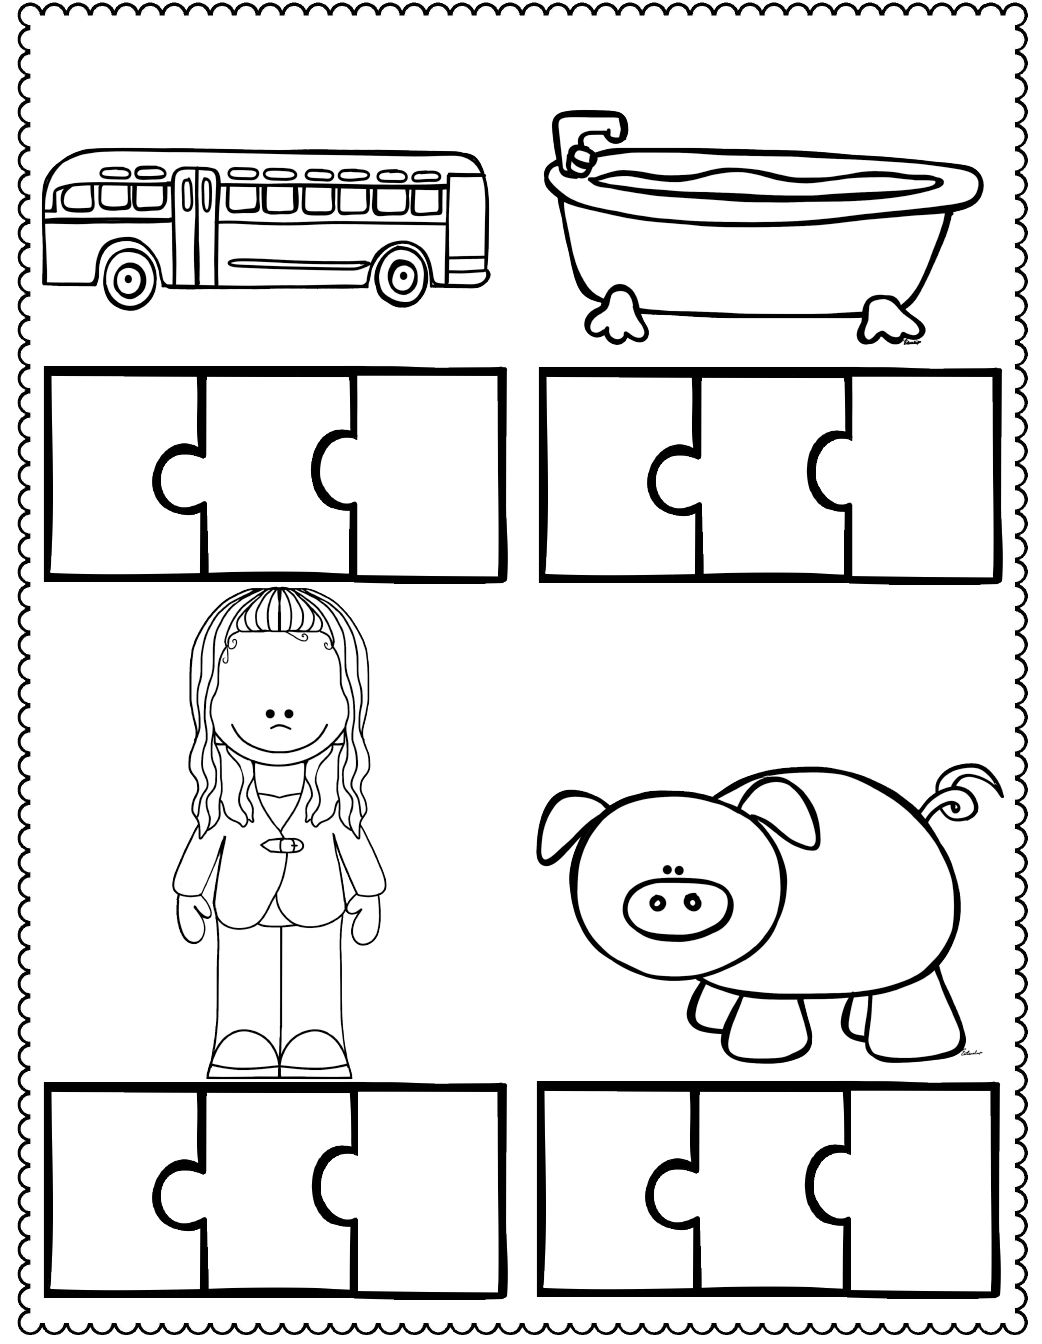 Reading Readiness For First Grade